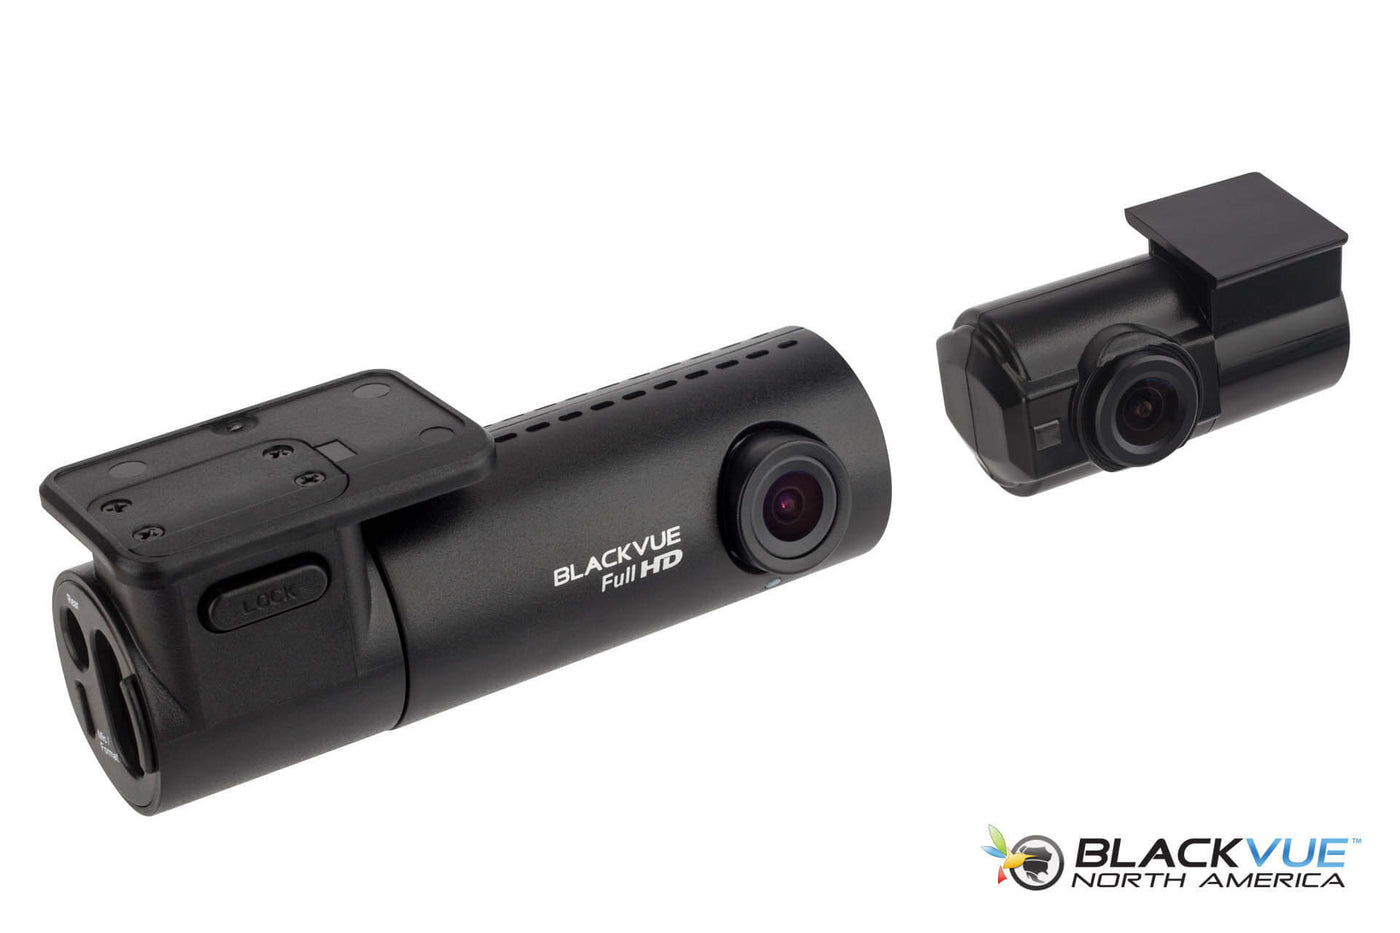 Blackvue Best Quality Dashcams For Sale North America R 100 Dr490 2ch 1080p Full Hd Dual Lens Dashcam Front